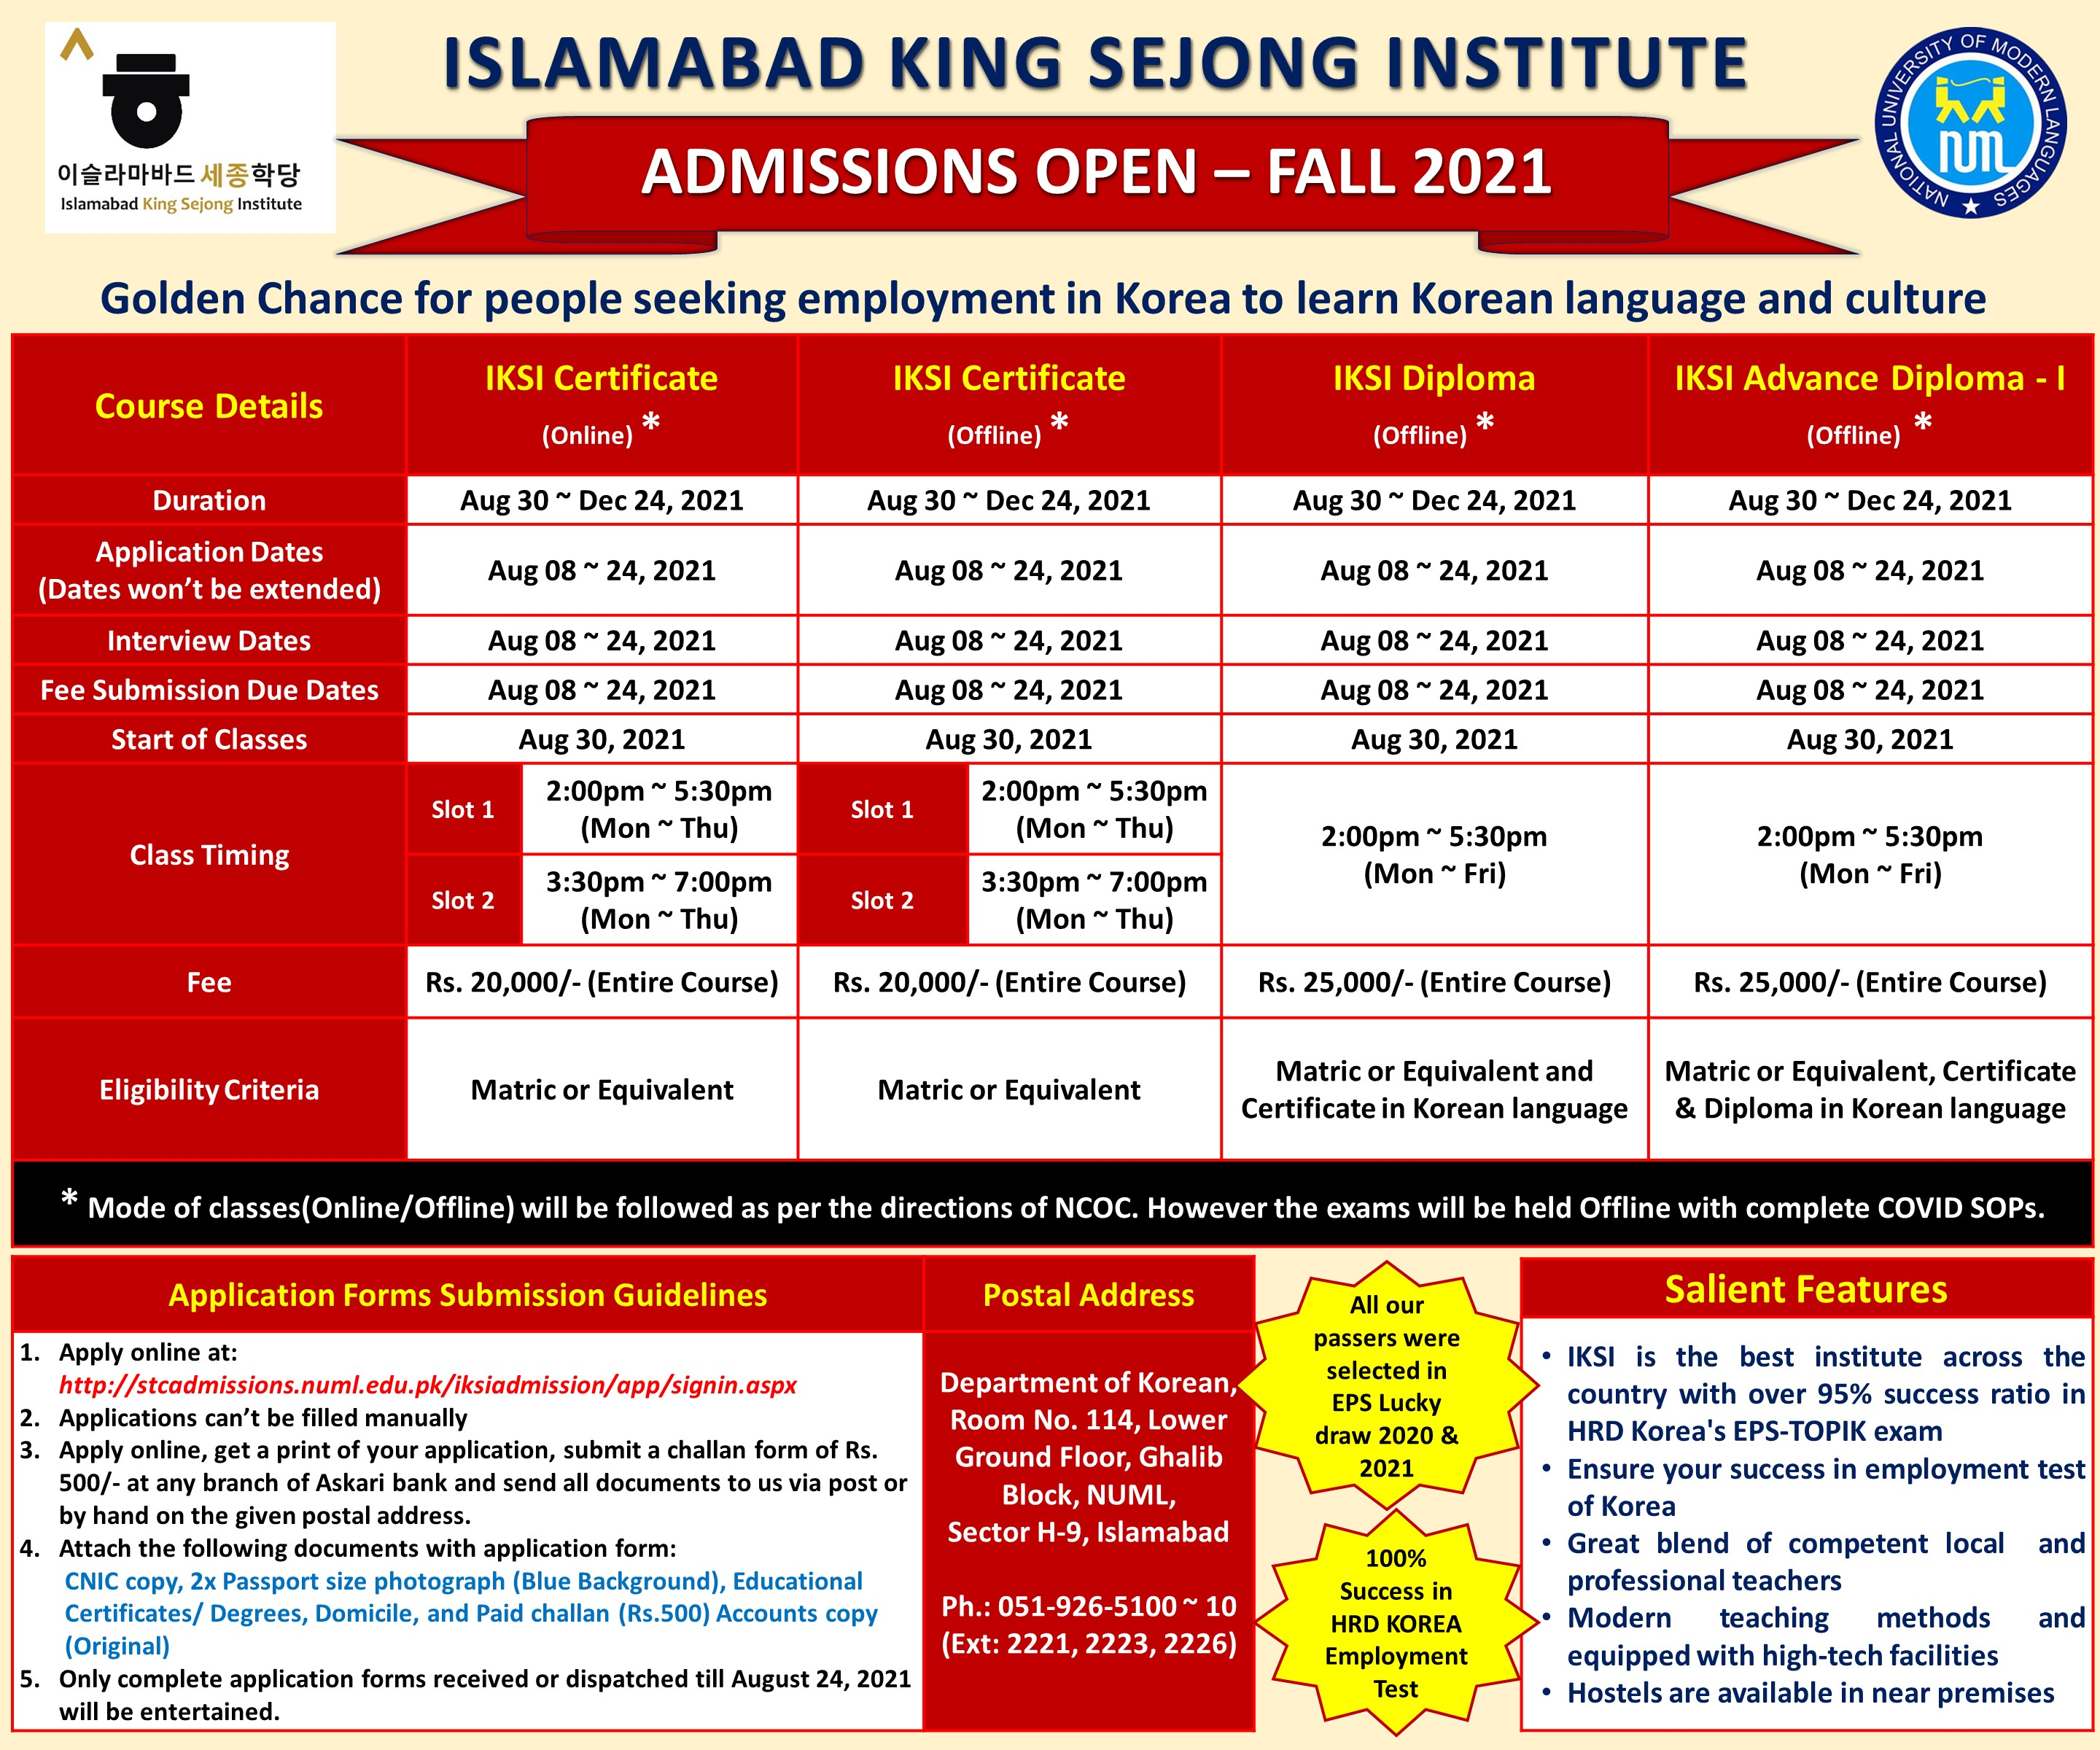 ISLAMABAD KING SEJONG INSTITUTE - FALL 2021 ADMISSION OPEN